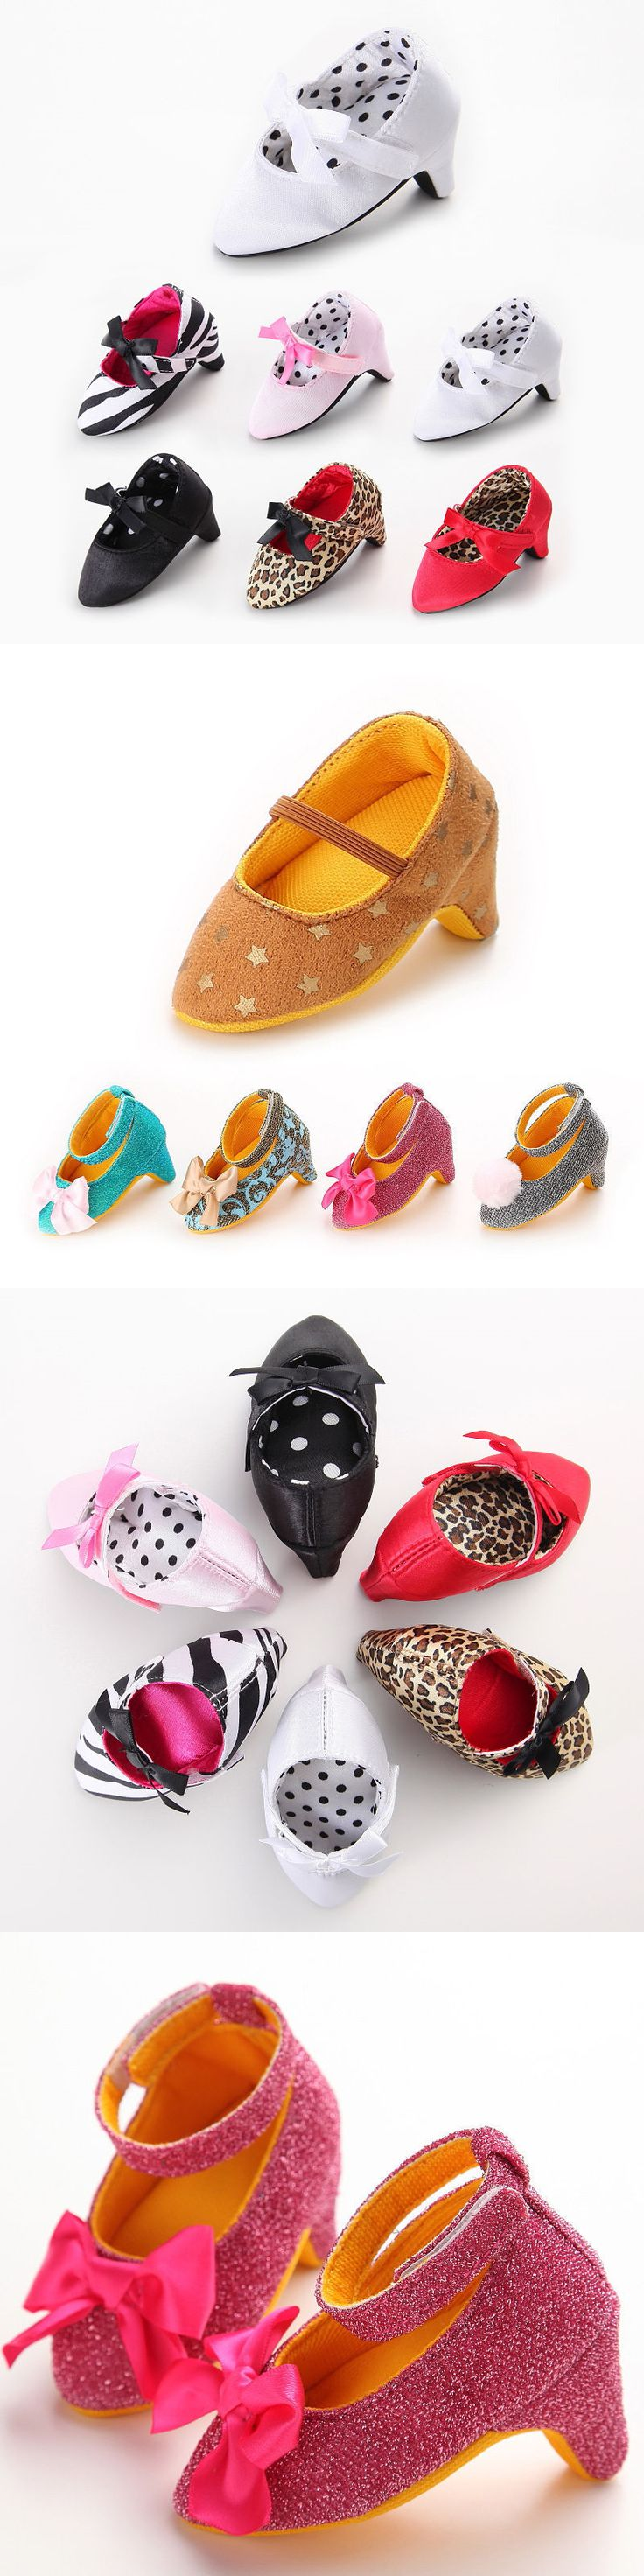 Used crib for sale ebay - Baby Girls Shoes Newborn Baby Girl High Heels Soft Sole Toddler Bow Leopard Princess Crib